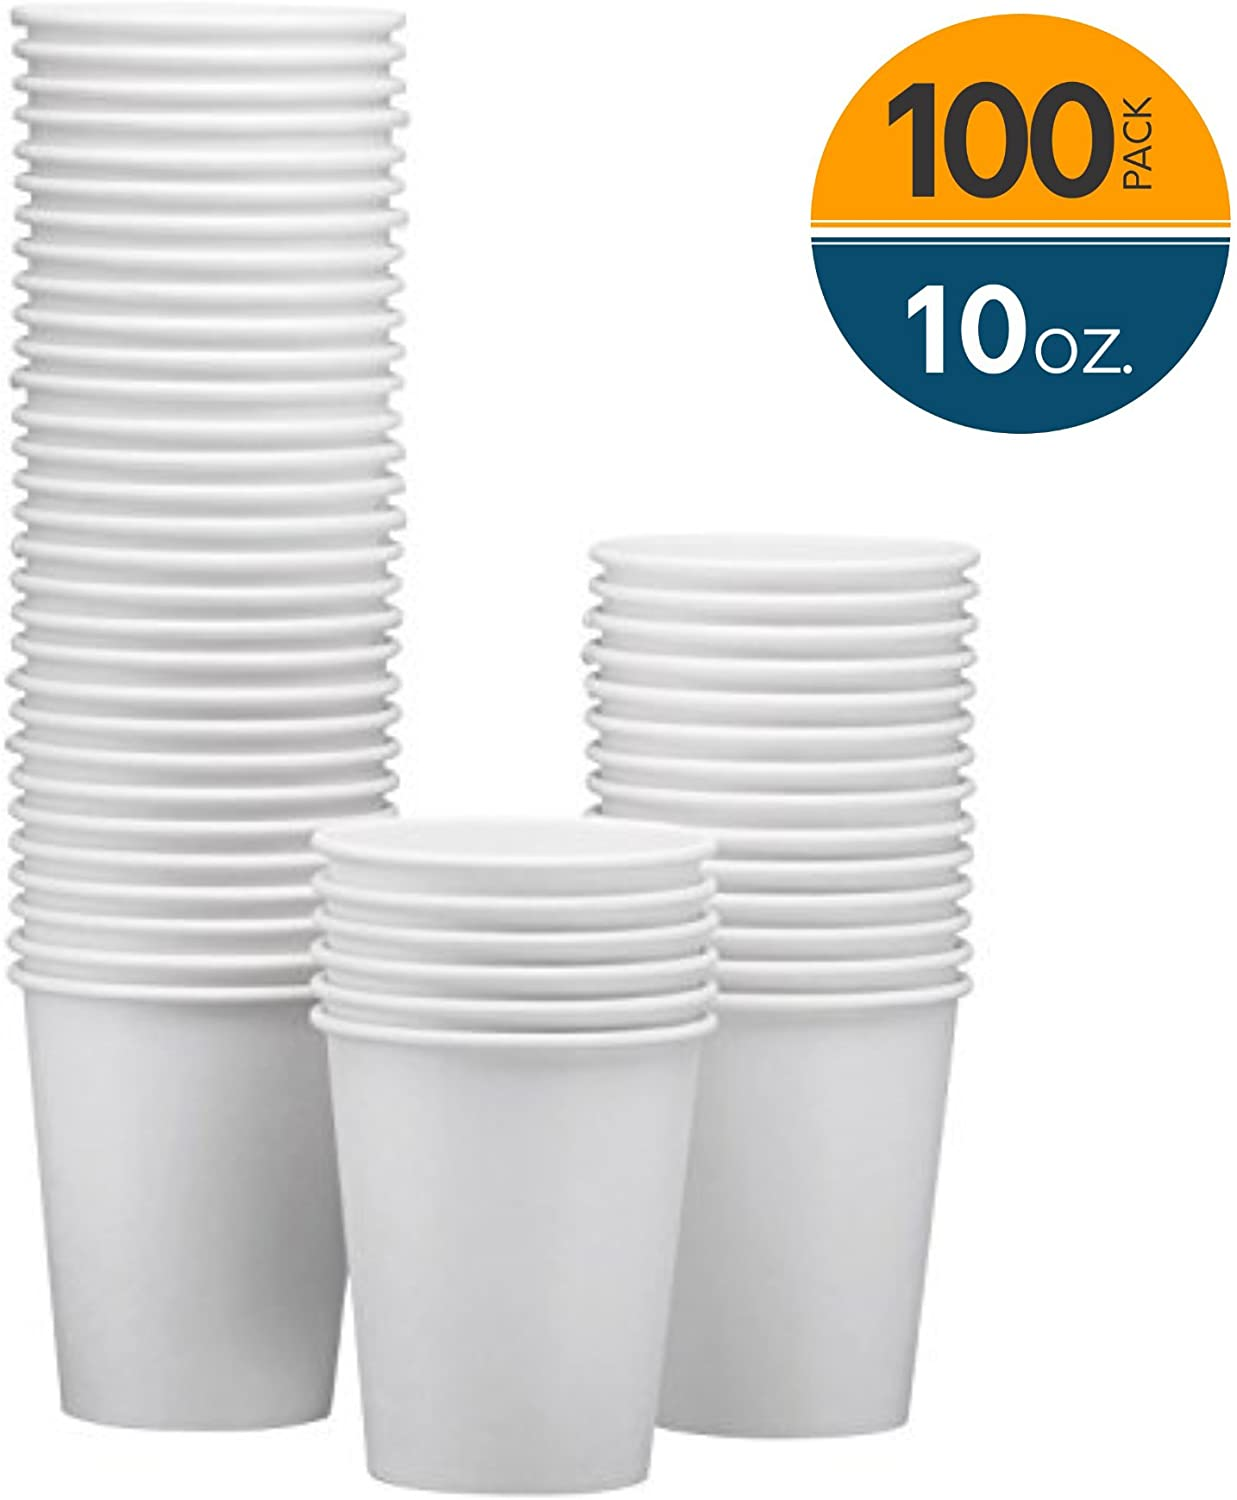 NYHI 100-Pack 10 oz White Paper Disposable Cups – Hot/Cold Beverage Drinking Cup for Water, Juice, Coffee or Tea – Ideal for Water Coolers, Party, or Coffee On the Go'